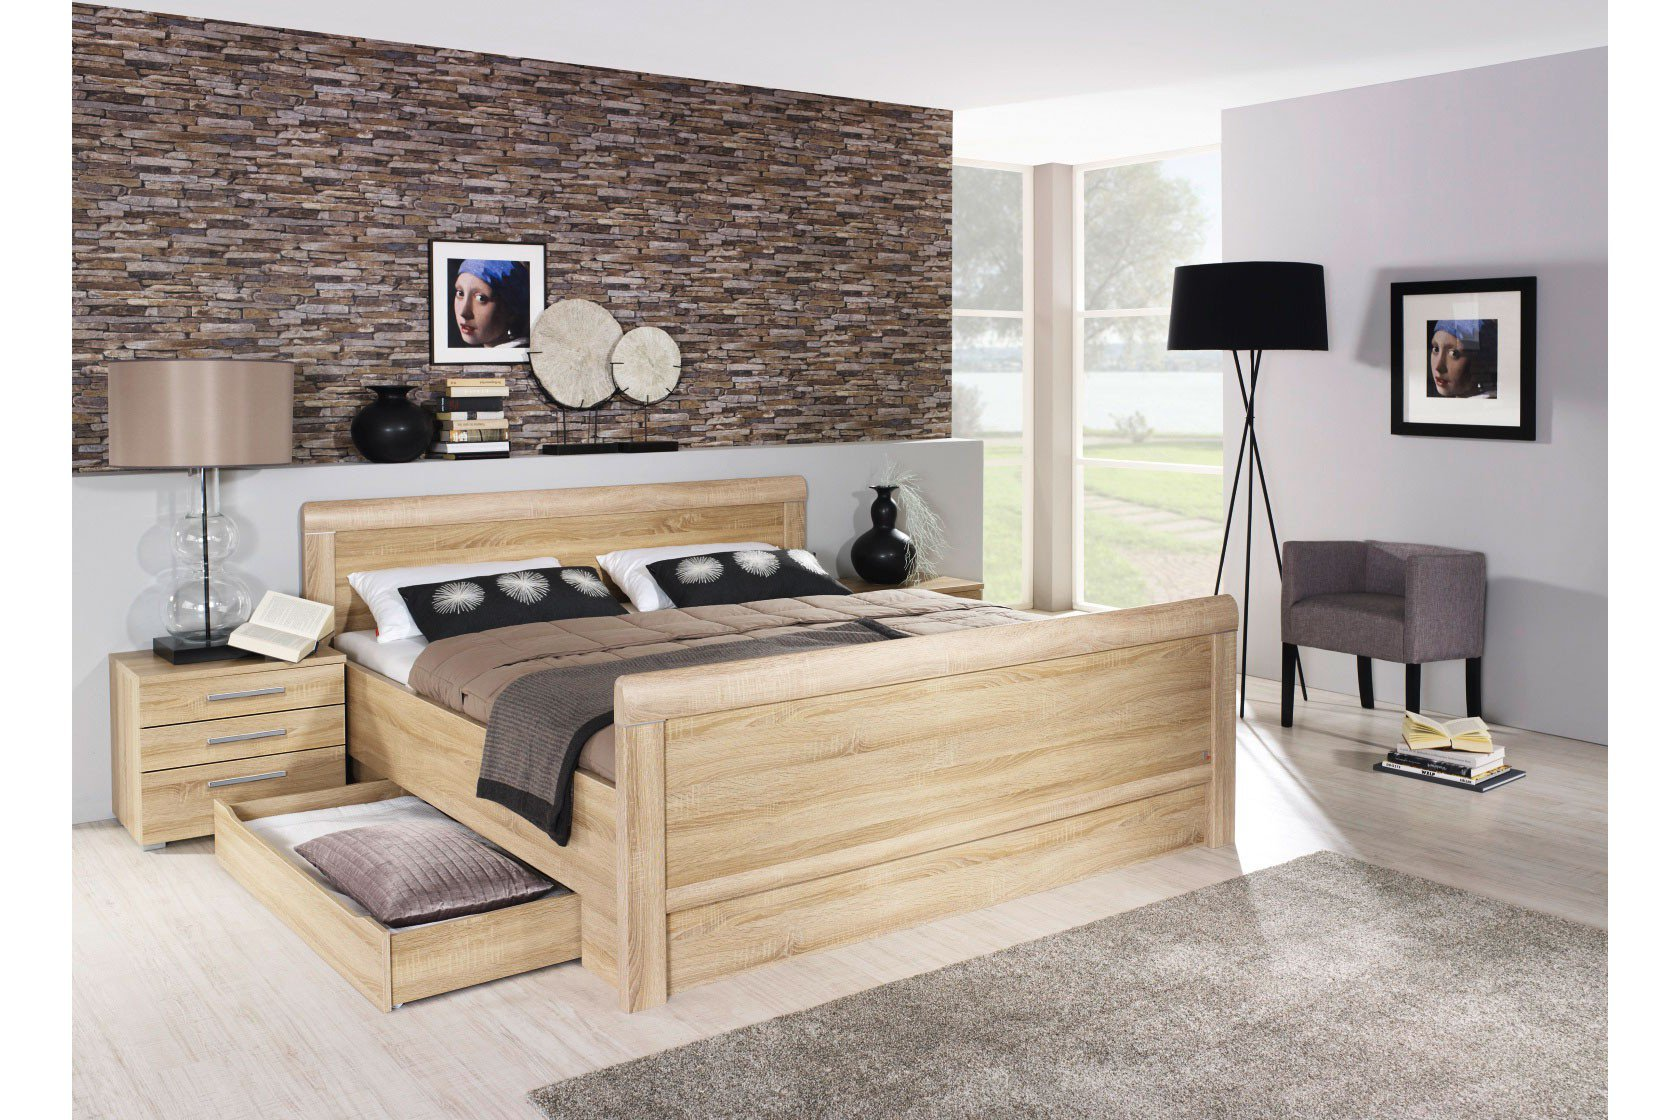 plexiglas hornbach. Black Bedroom Furniture Sets. Home Design Ideas